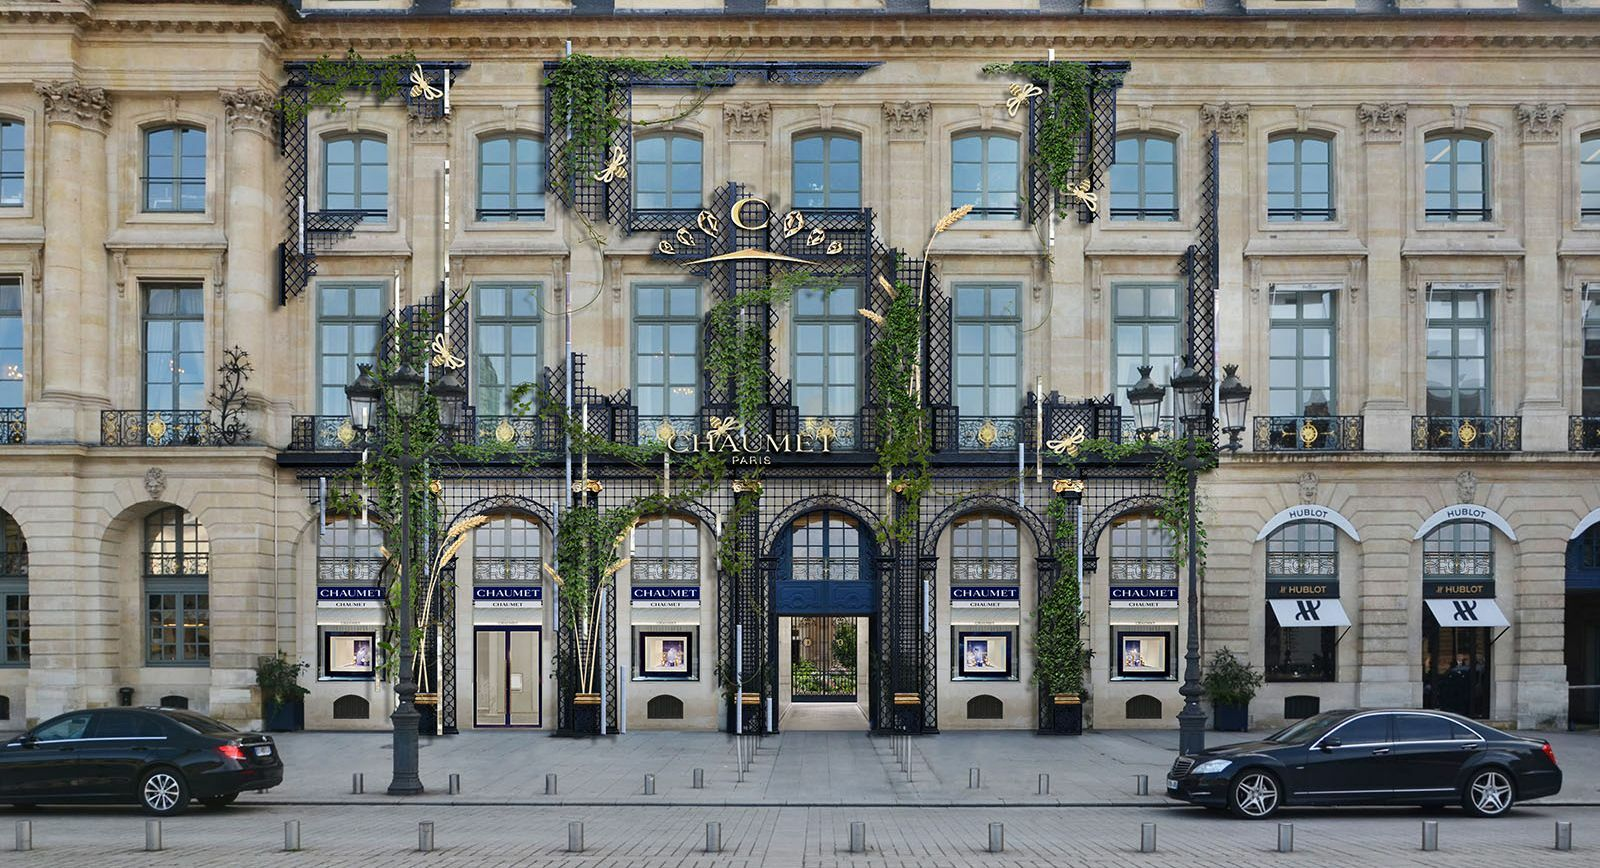 New Chaumet boutique Place Vendome